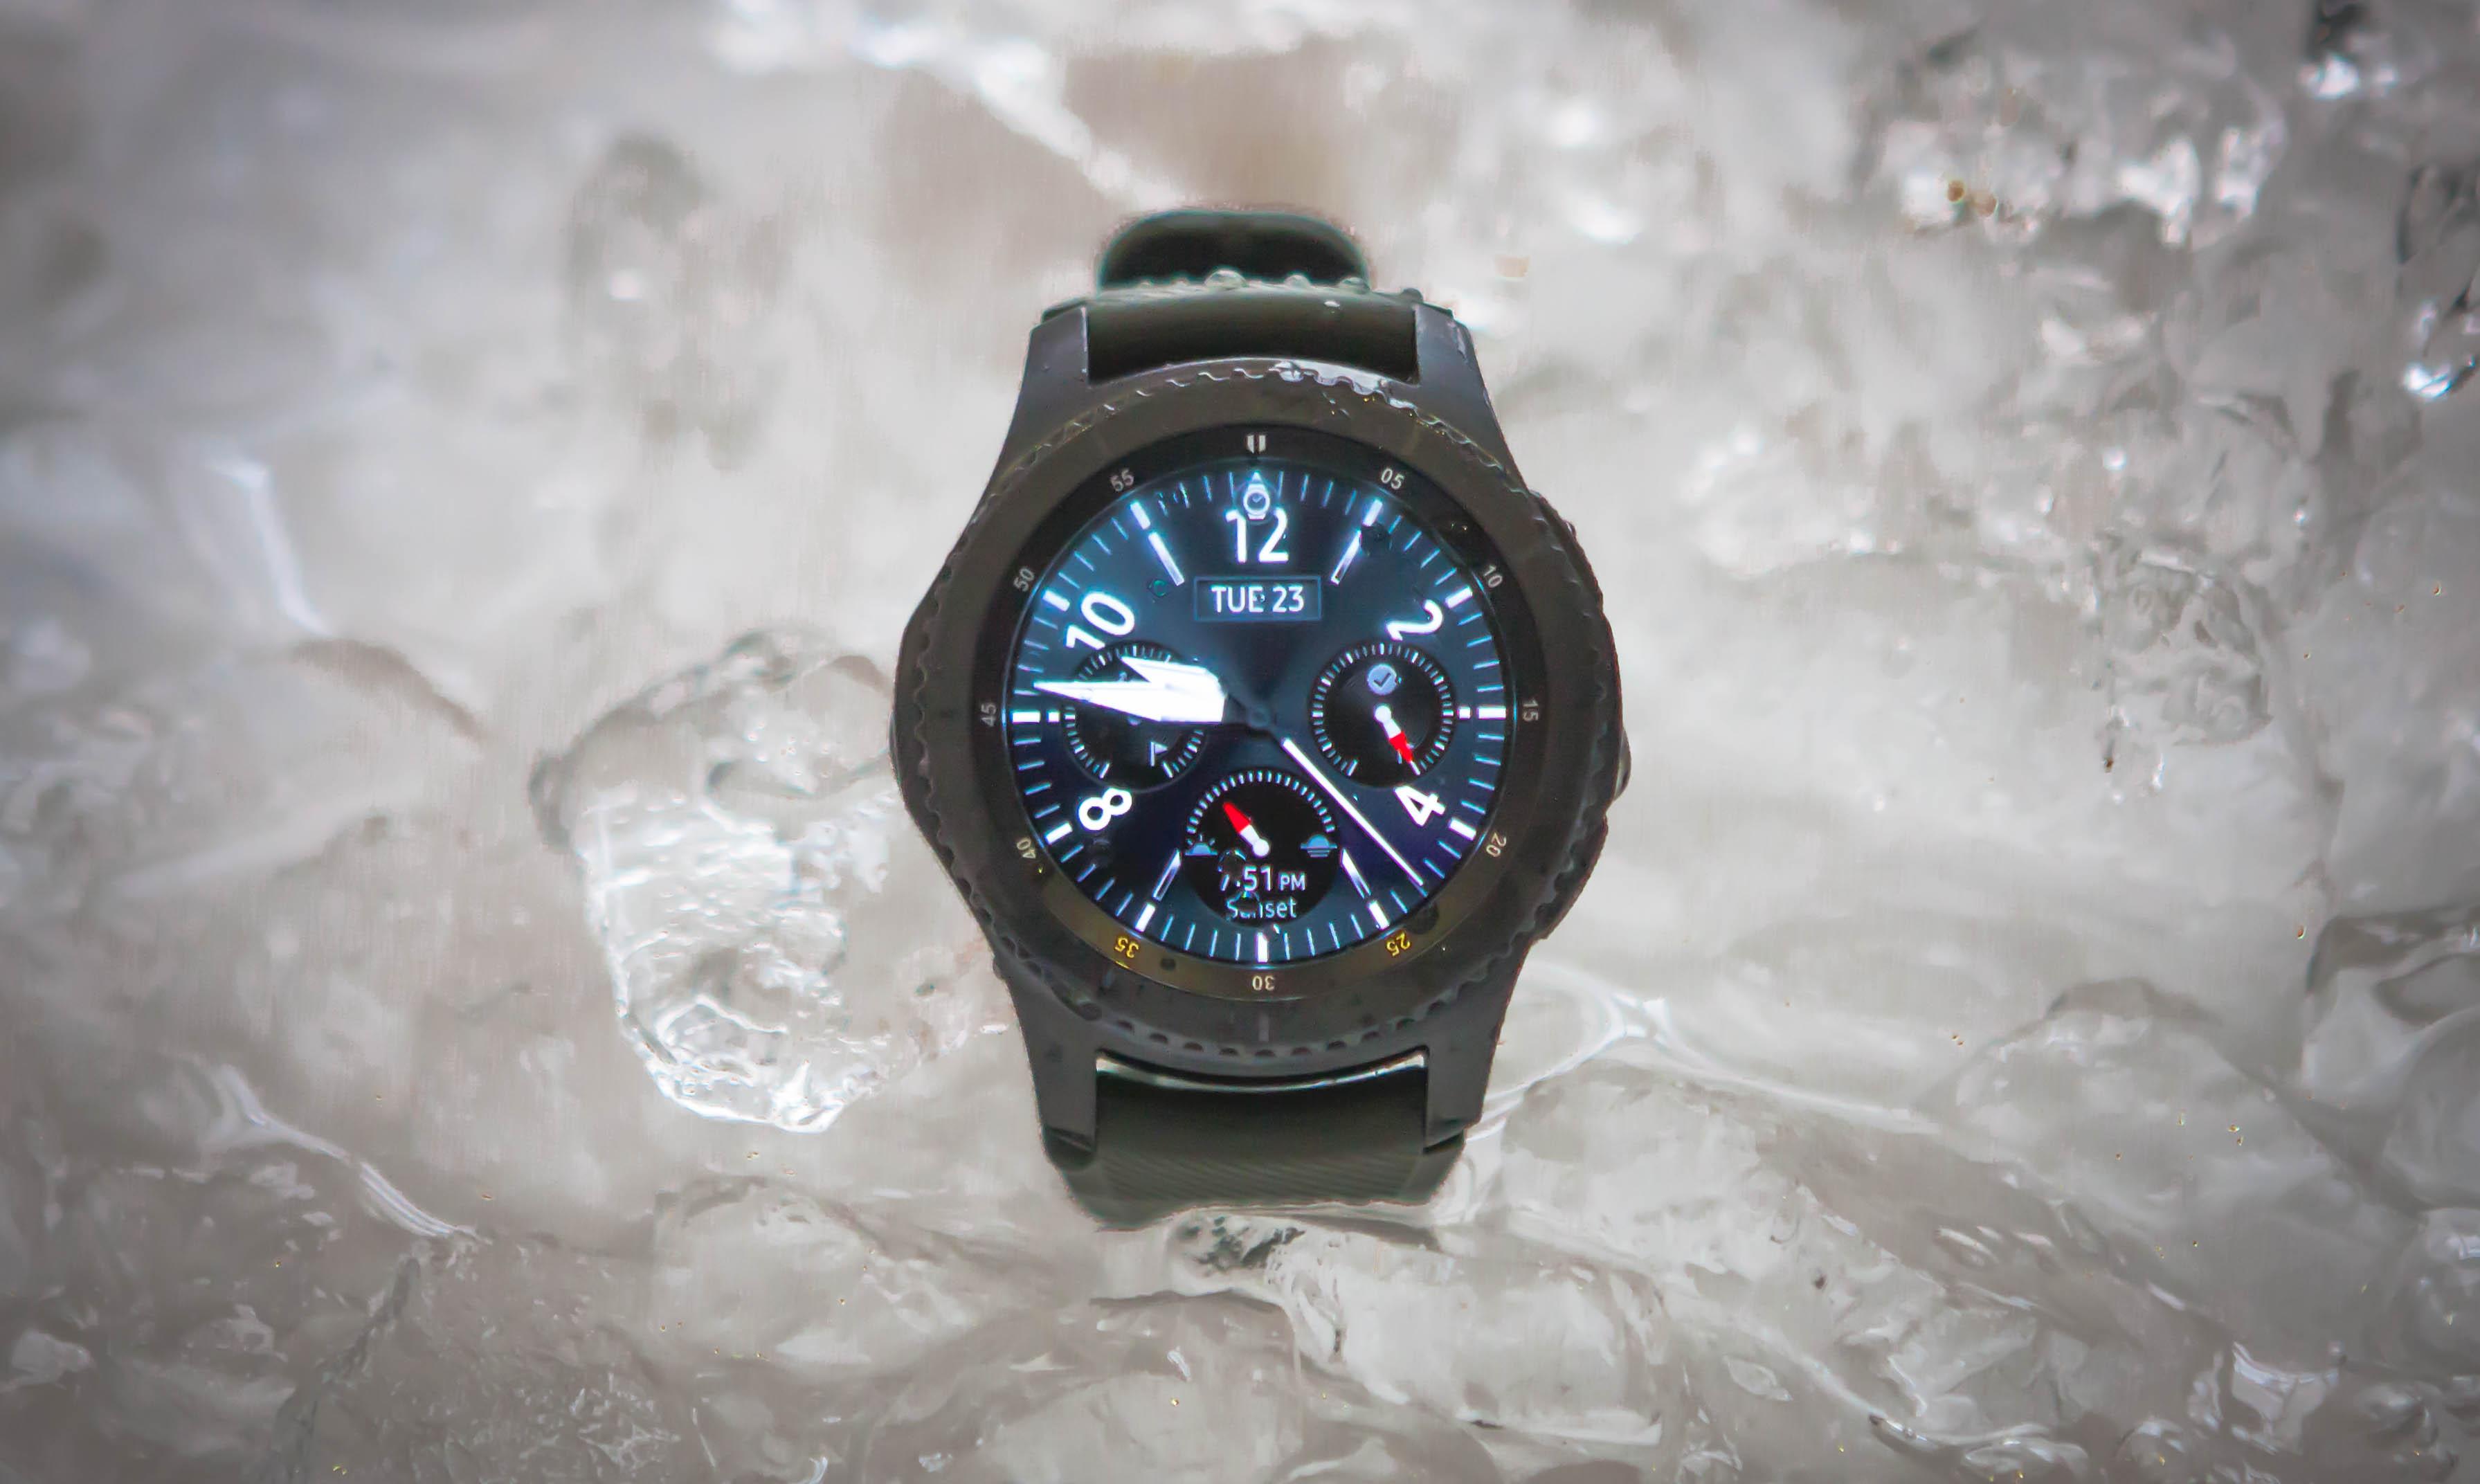 immersed classic samsung smartwatches img ice smartwatch watches unveils frontier gear in dry and